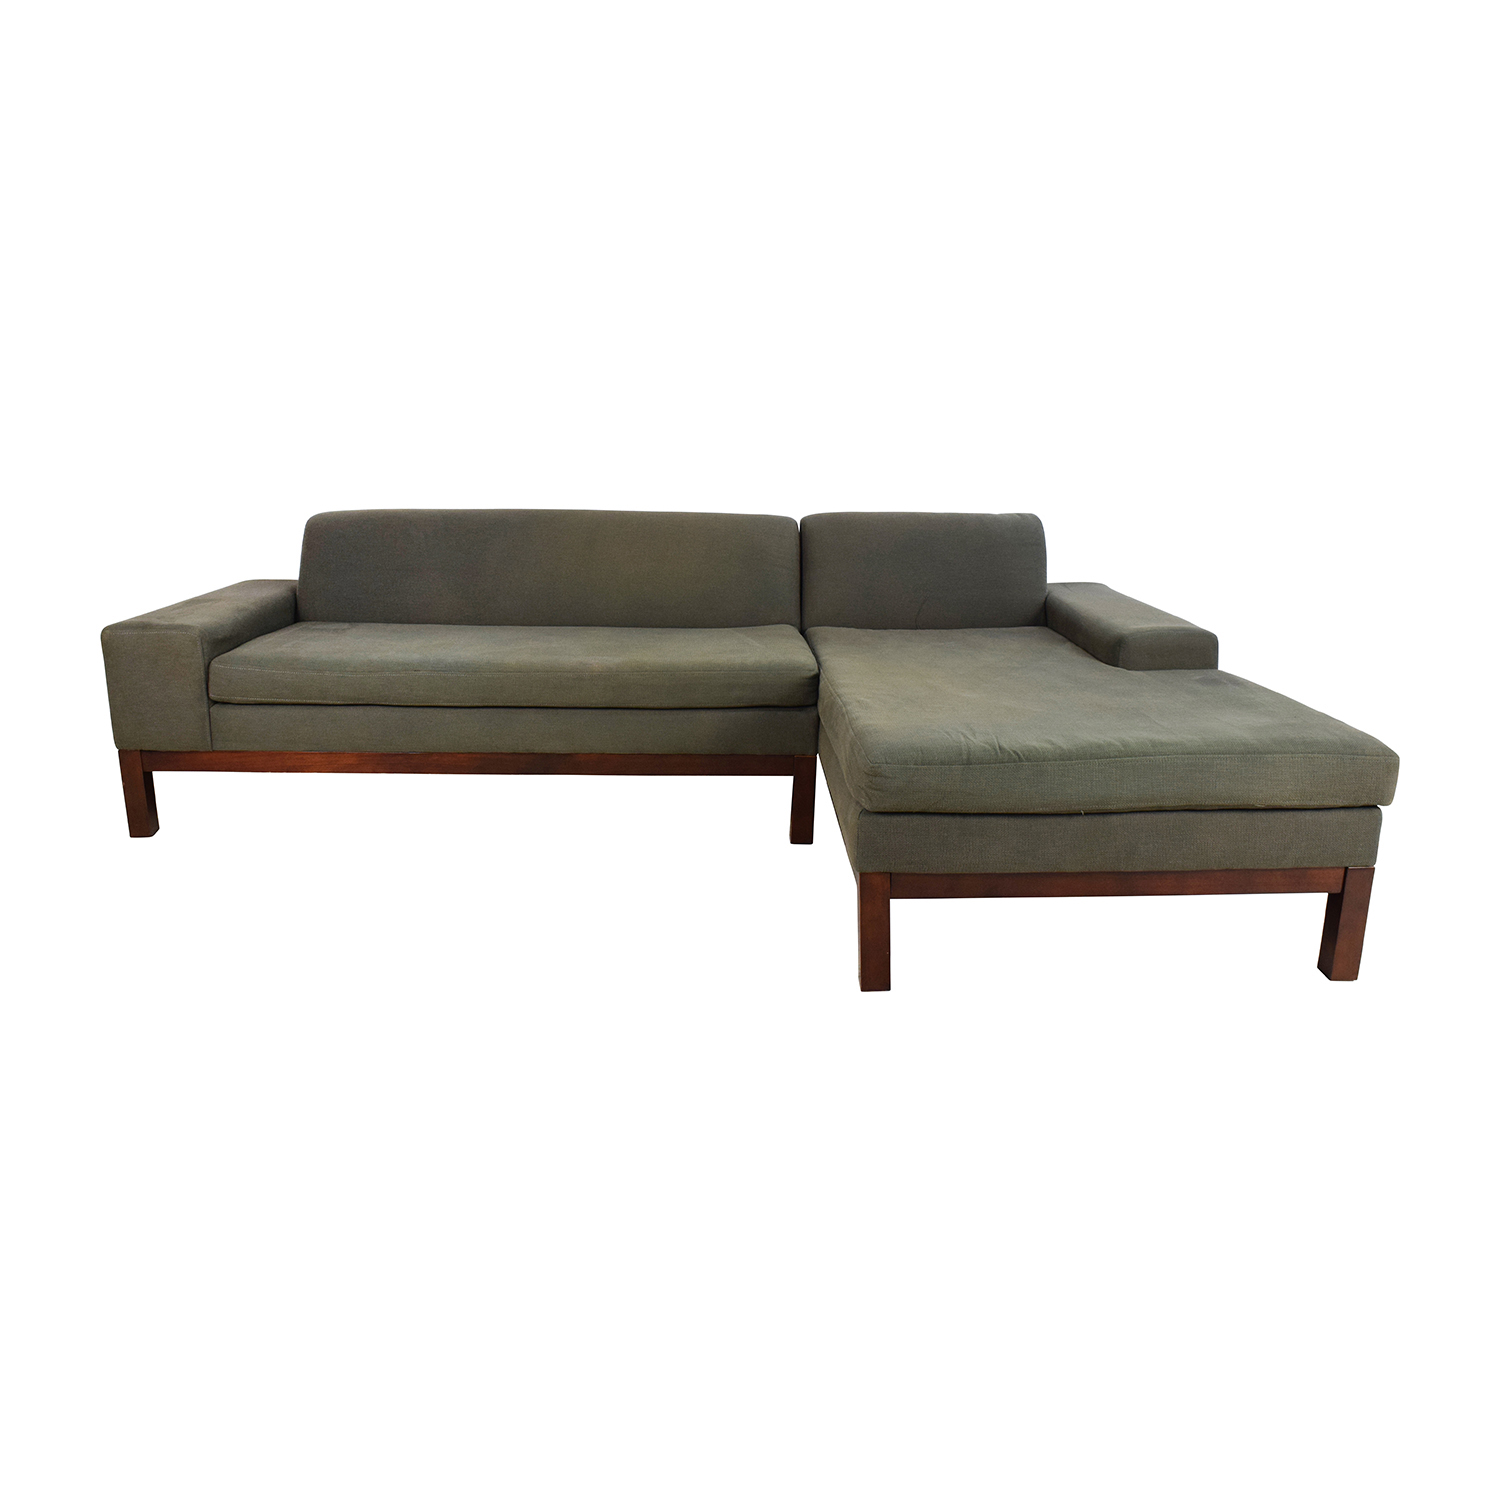 Wondrous 86 Off West Elm West Elm Lorimer Green Sectional Sofas Lamtechconsult Wood Chair Design Ideas Lamtechconsultcom